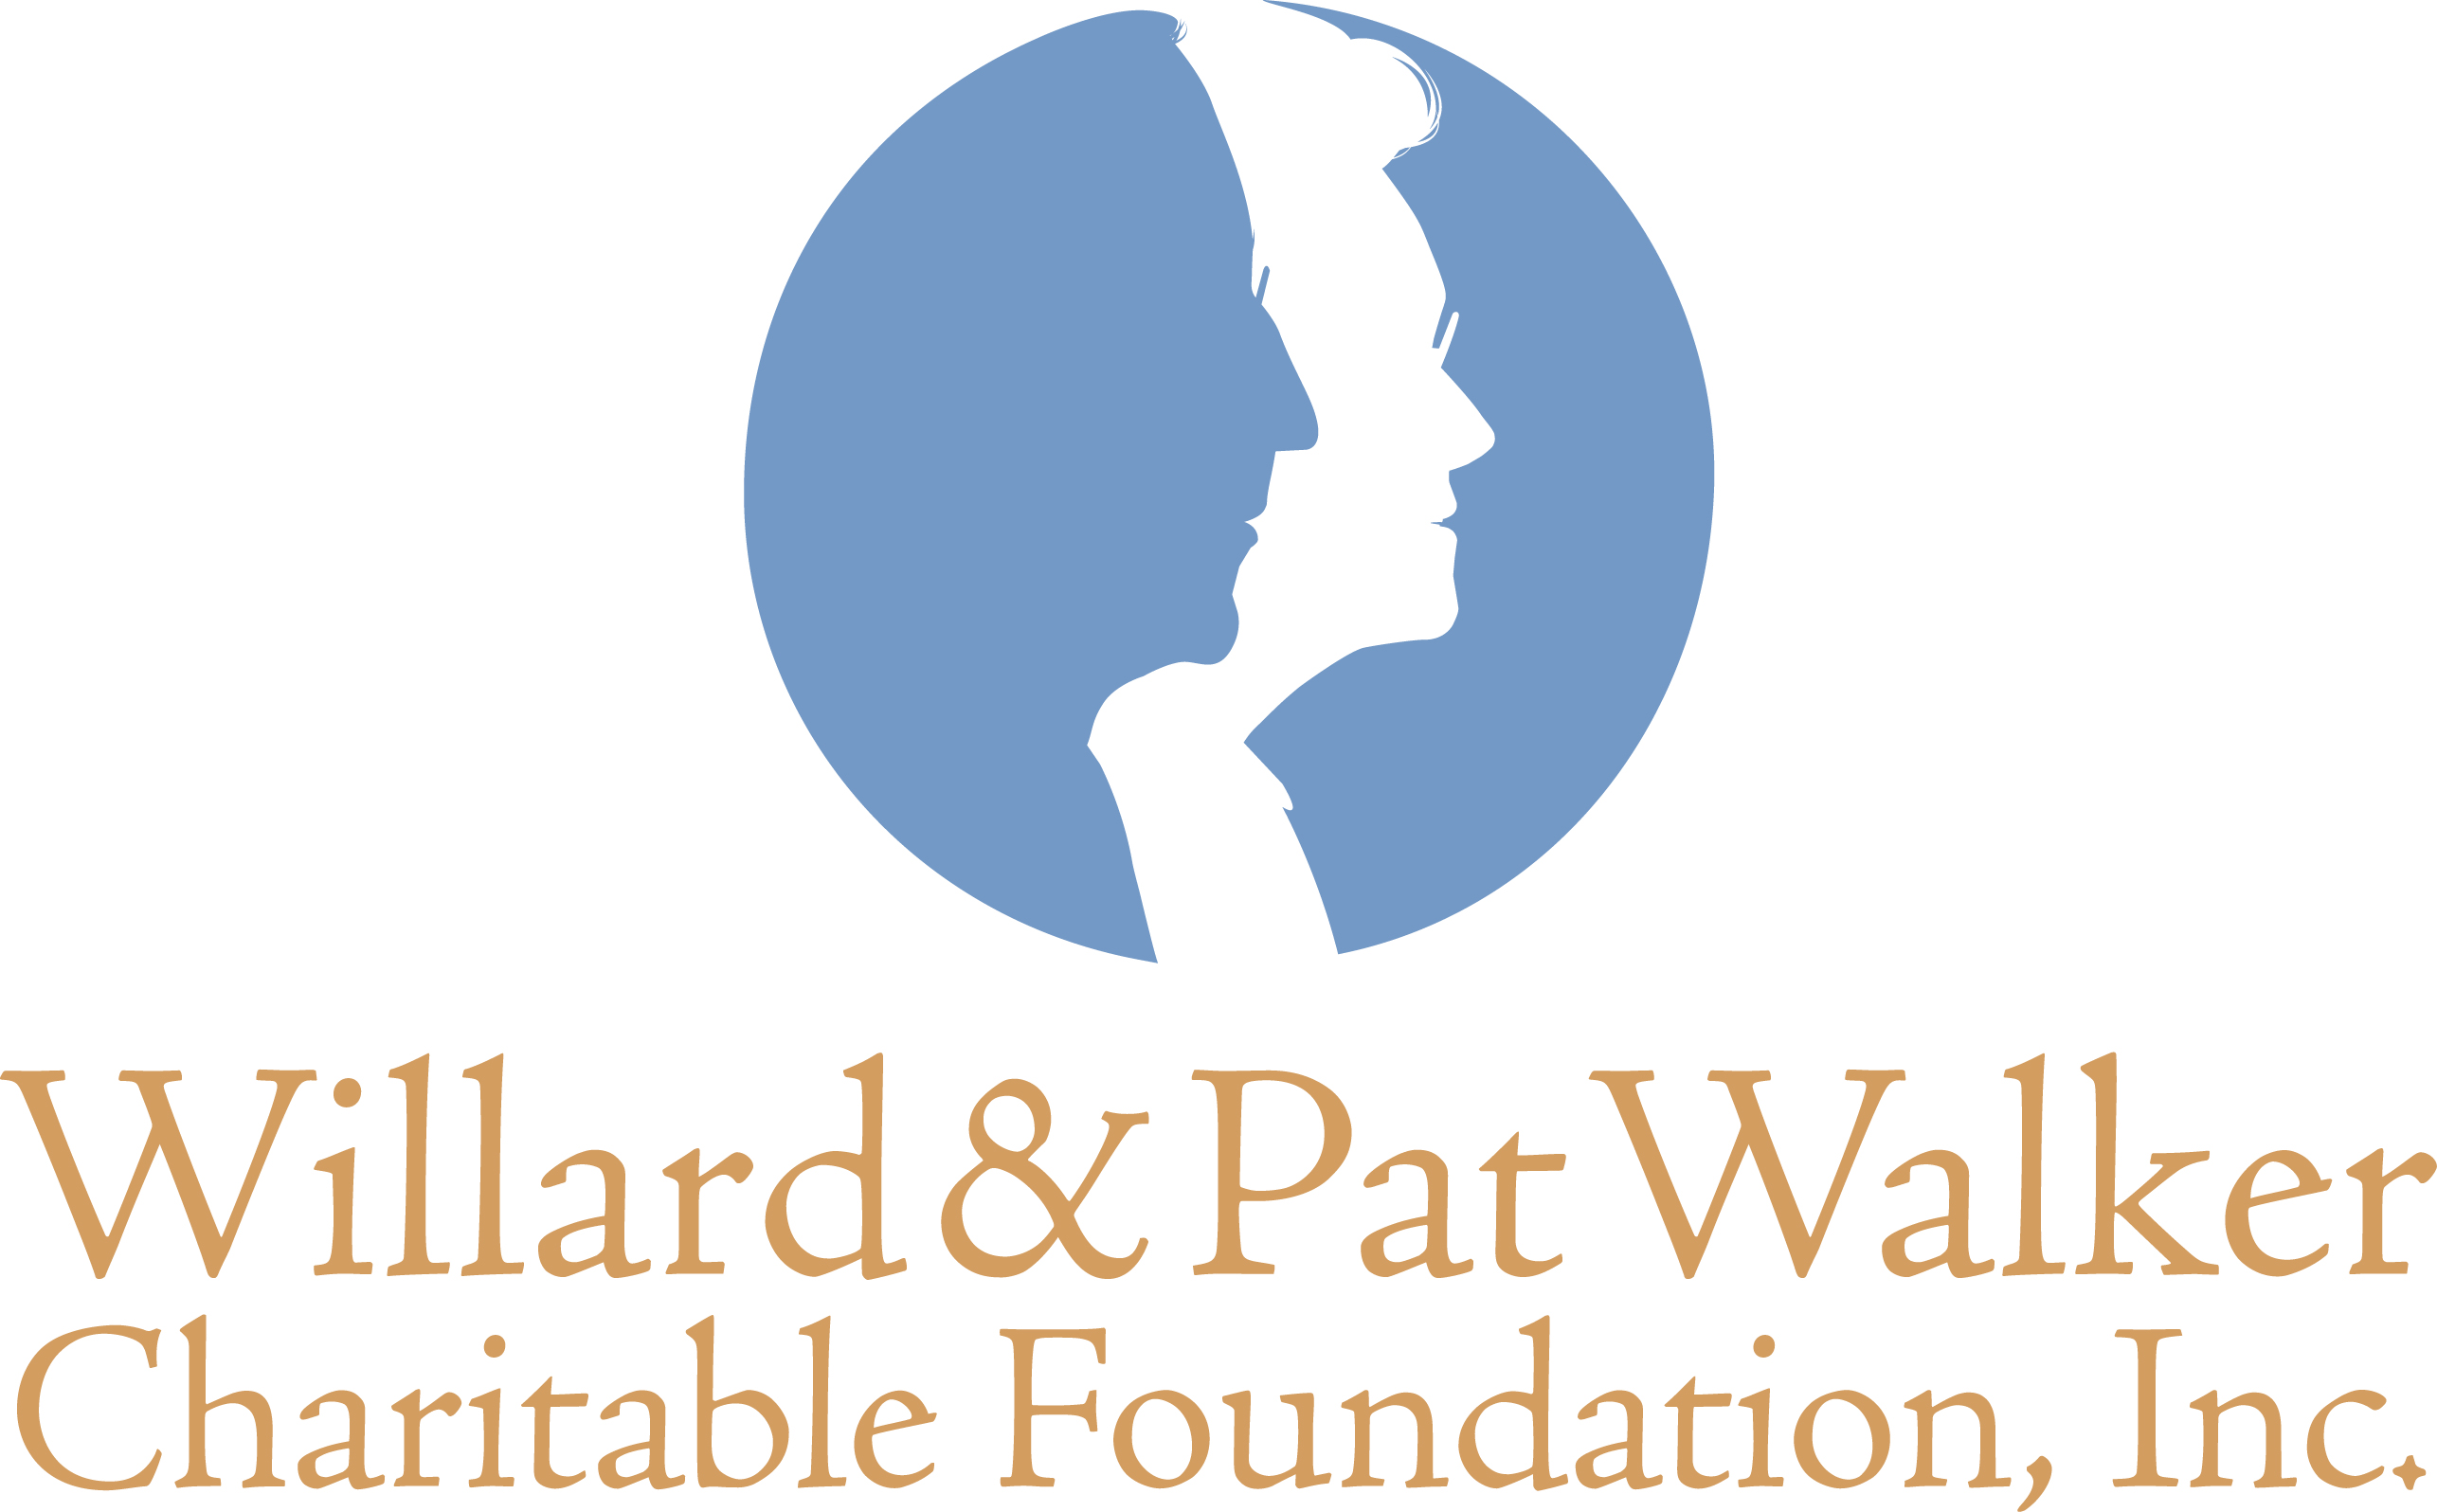 Willard and Pat Walker Charitable Foundation